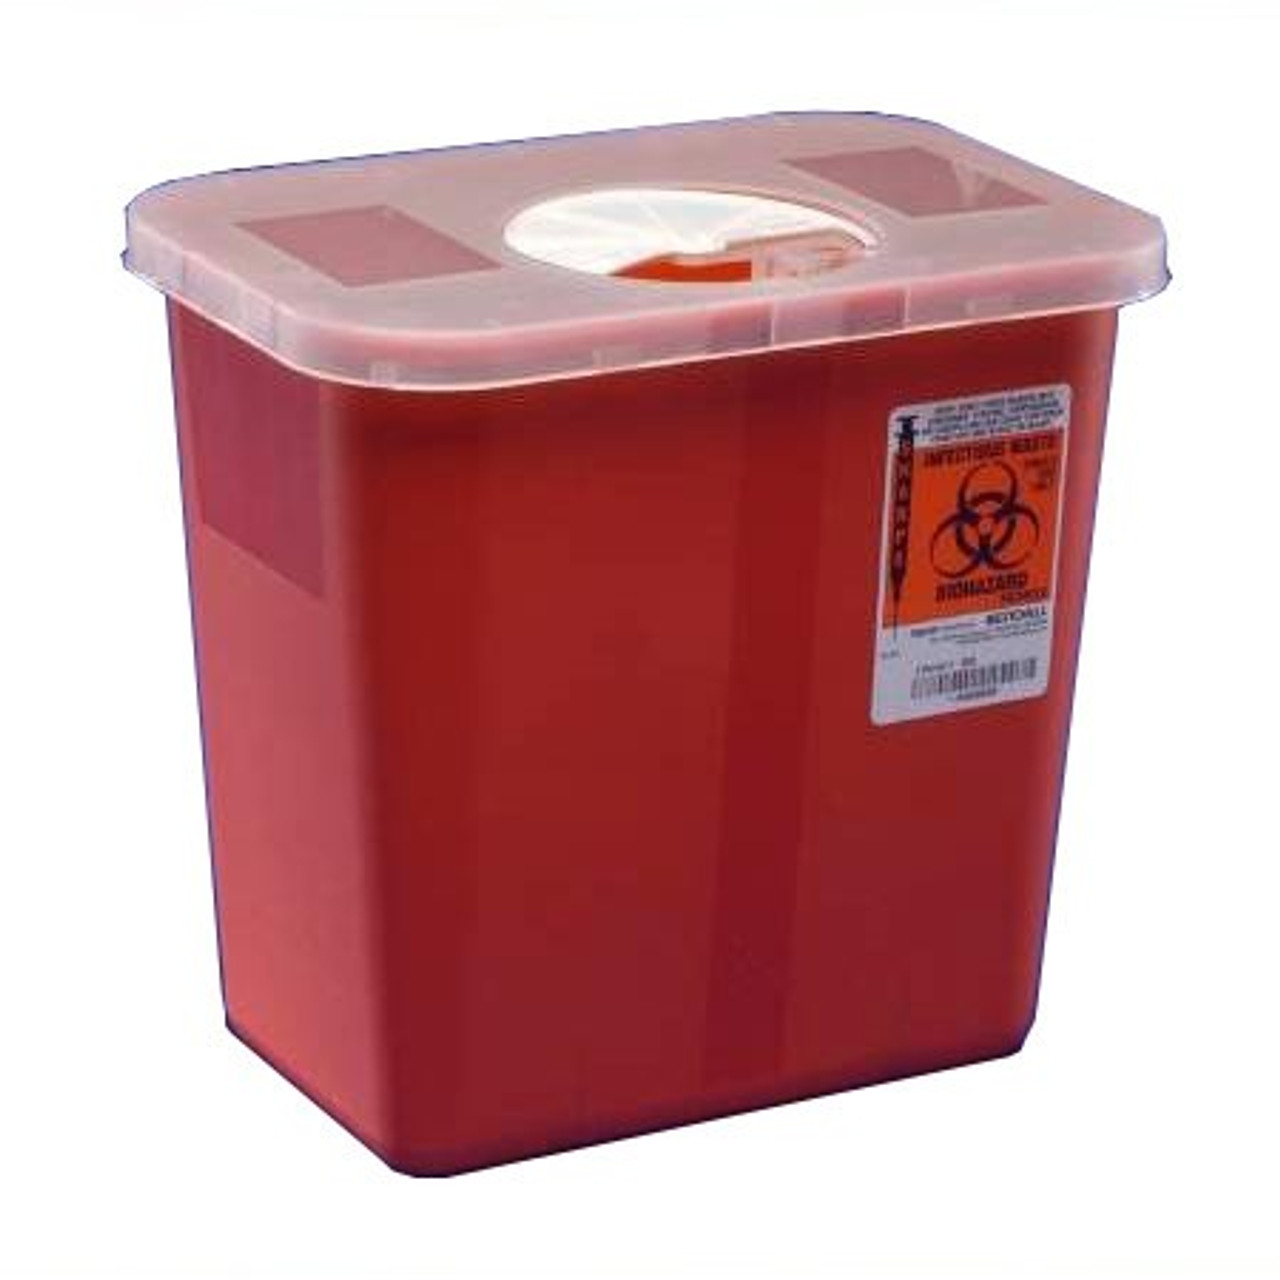 2 Gallon Sharps Container #8970 by Kendall